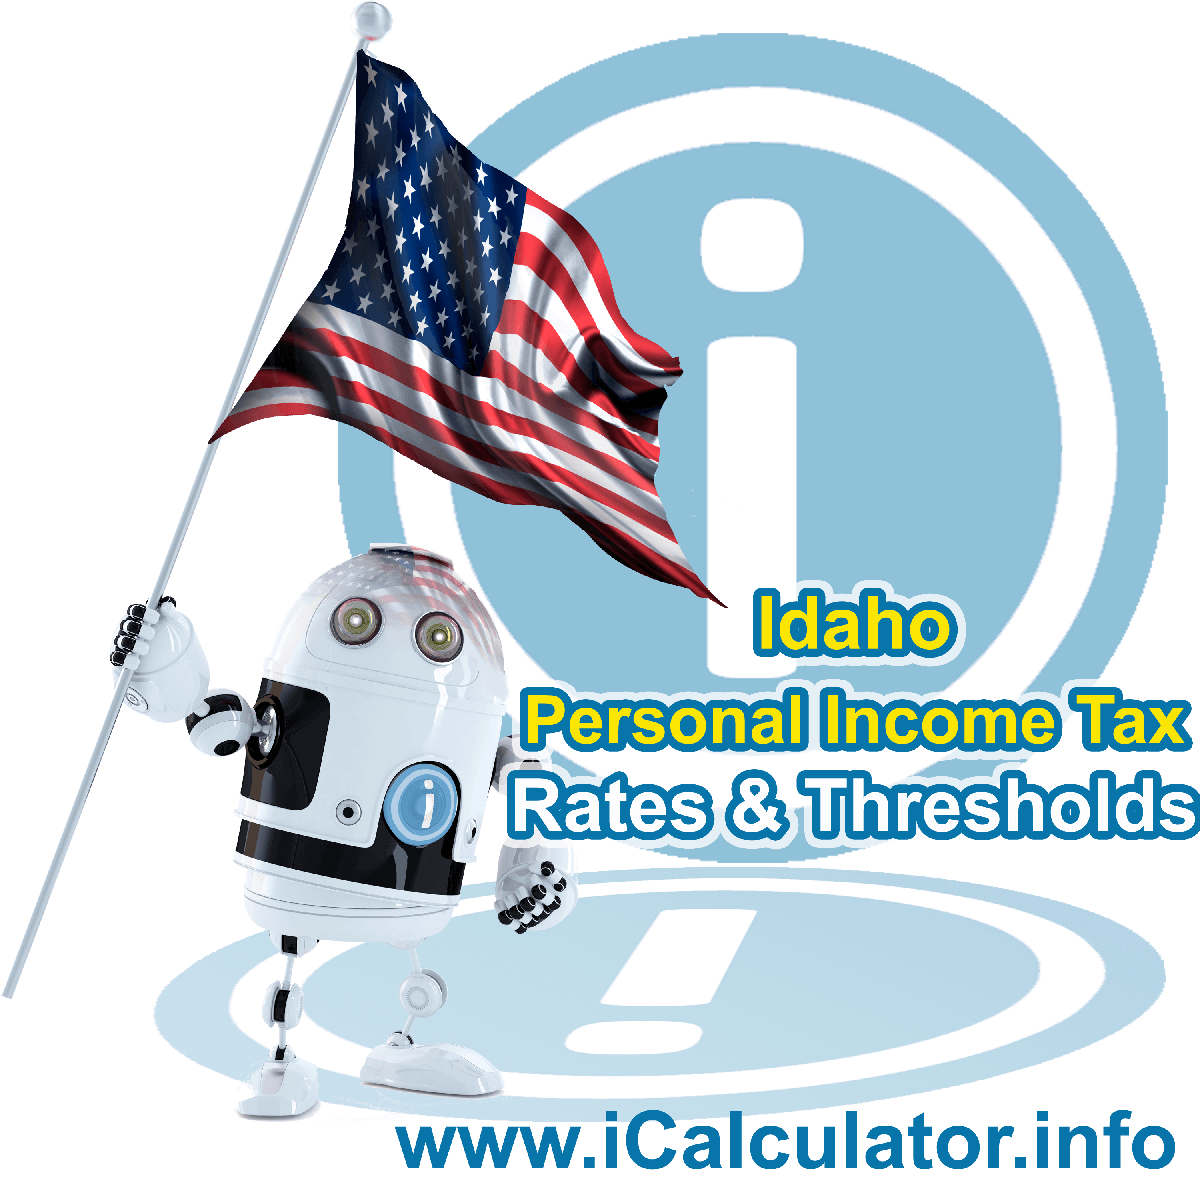 Idaho State Tax Tables 2018. This image displays details of the Idaho State Tax Tables for the 2018 tax return year which is provided in support of the 2018 US Tax Calculator